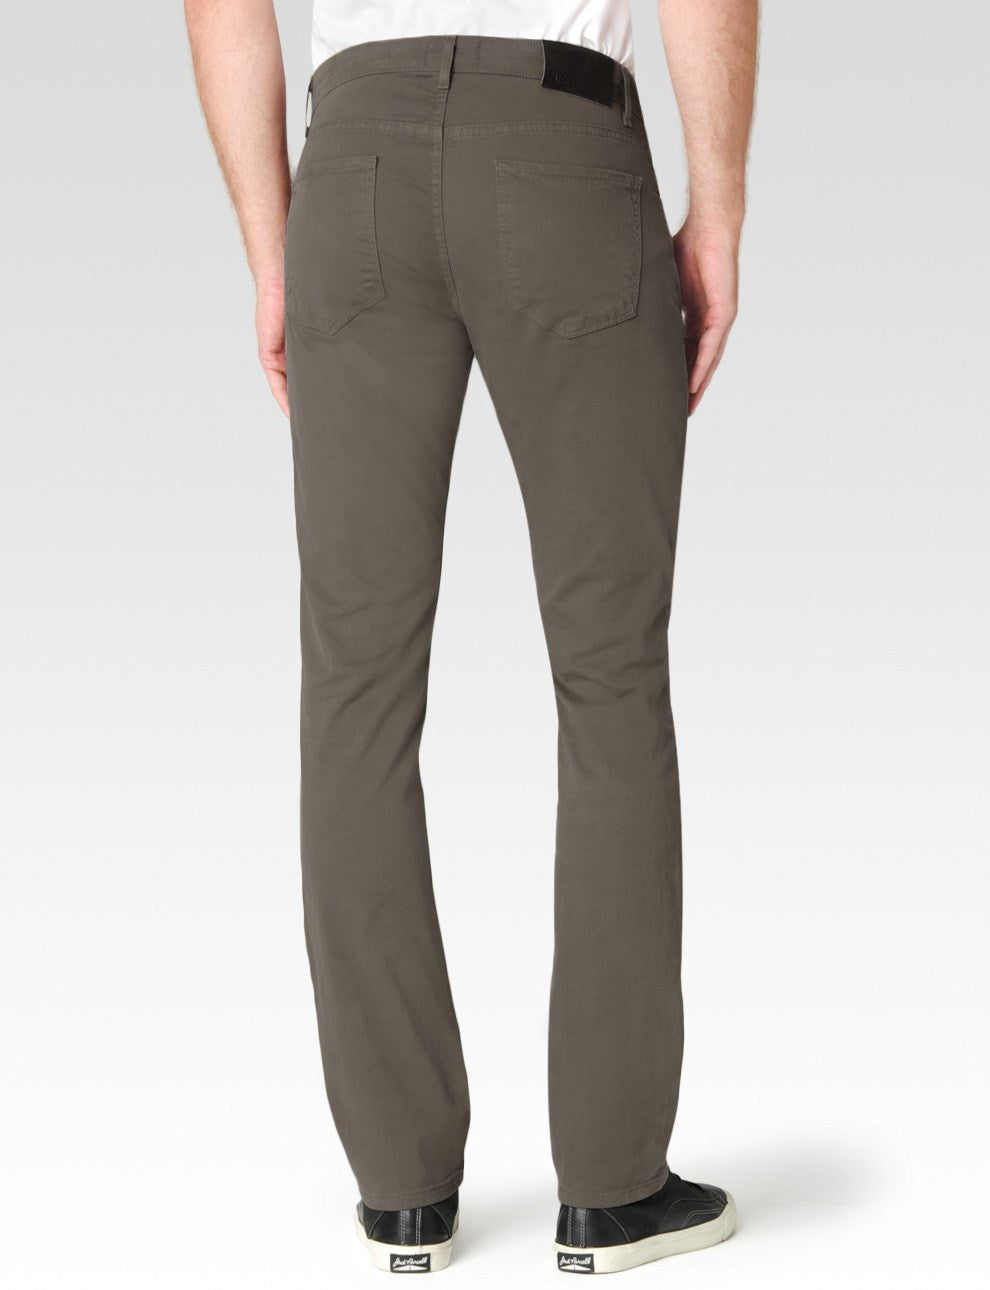 Paige Normandie Slim Fit Straight Japanese Twill Jean Desert Taupe